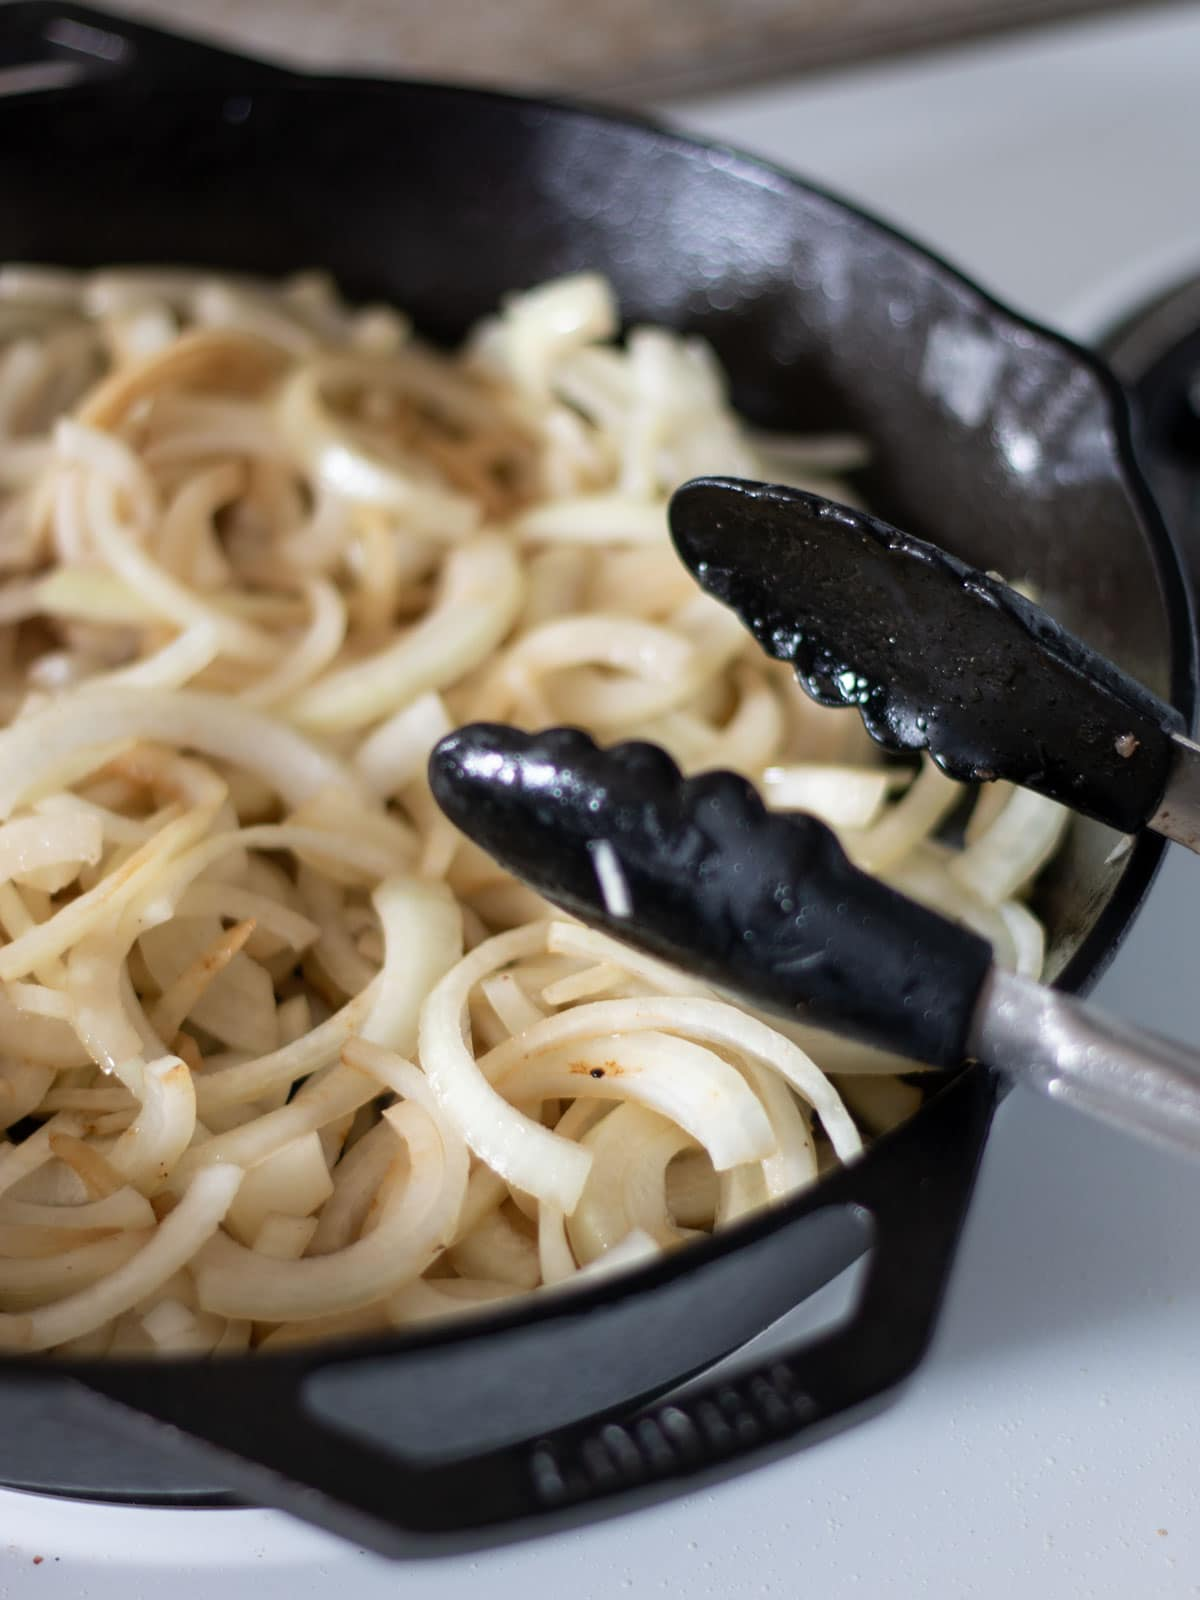 sliced onions cooking in a cast iron skillet